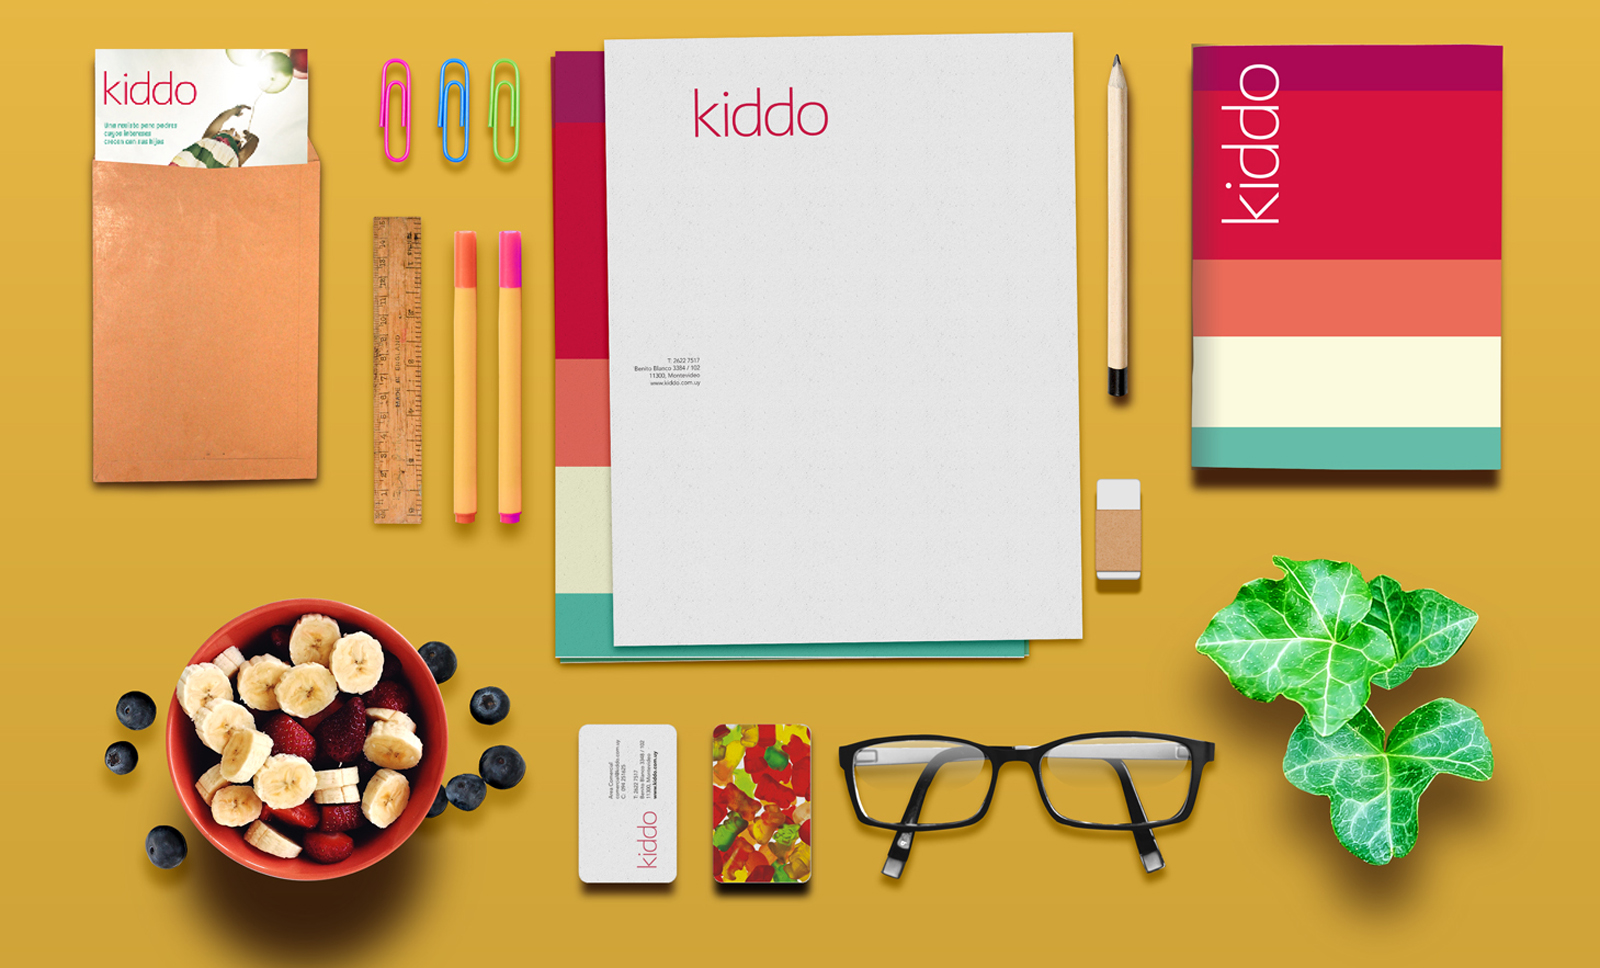 Cliente: KIDDO. Identidad visual